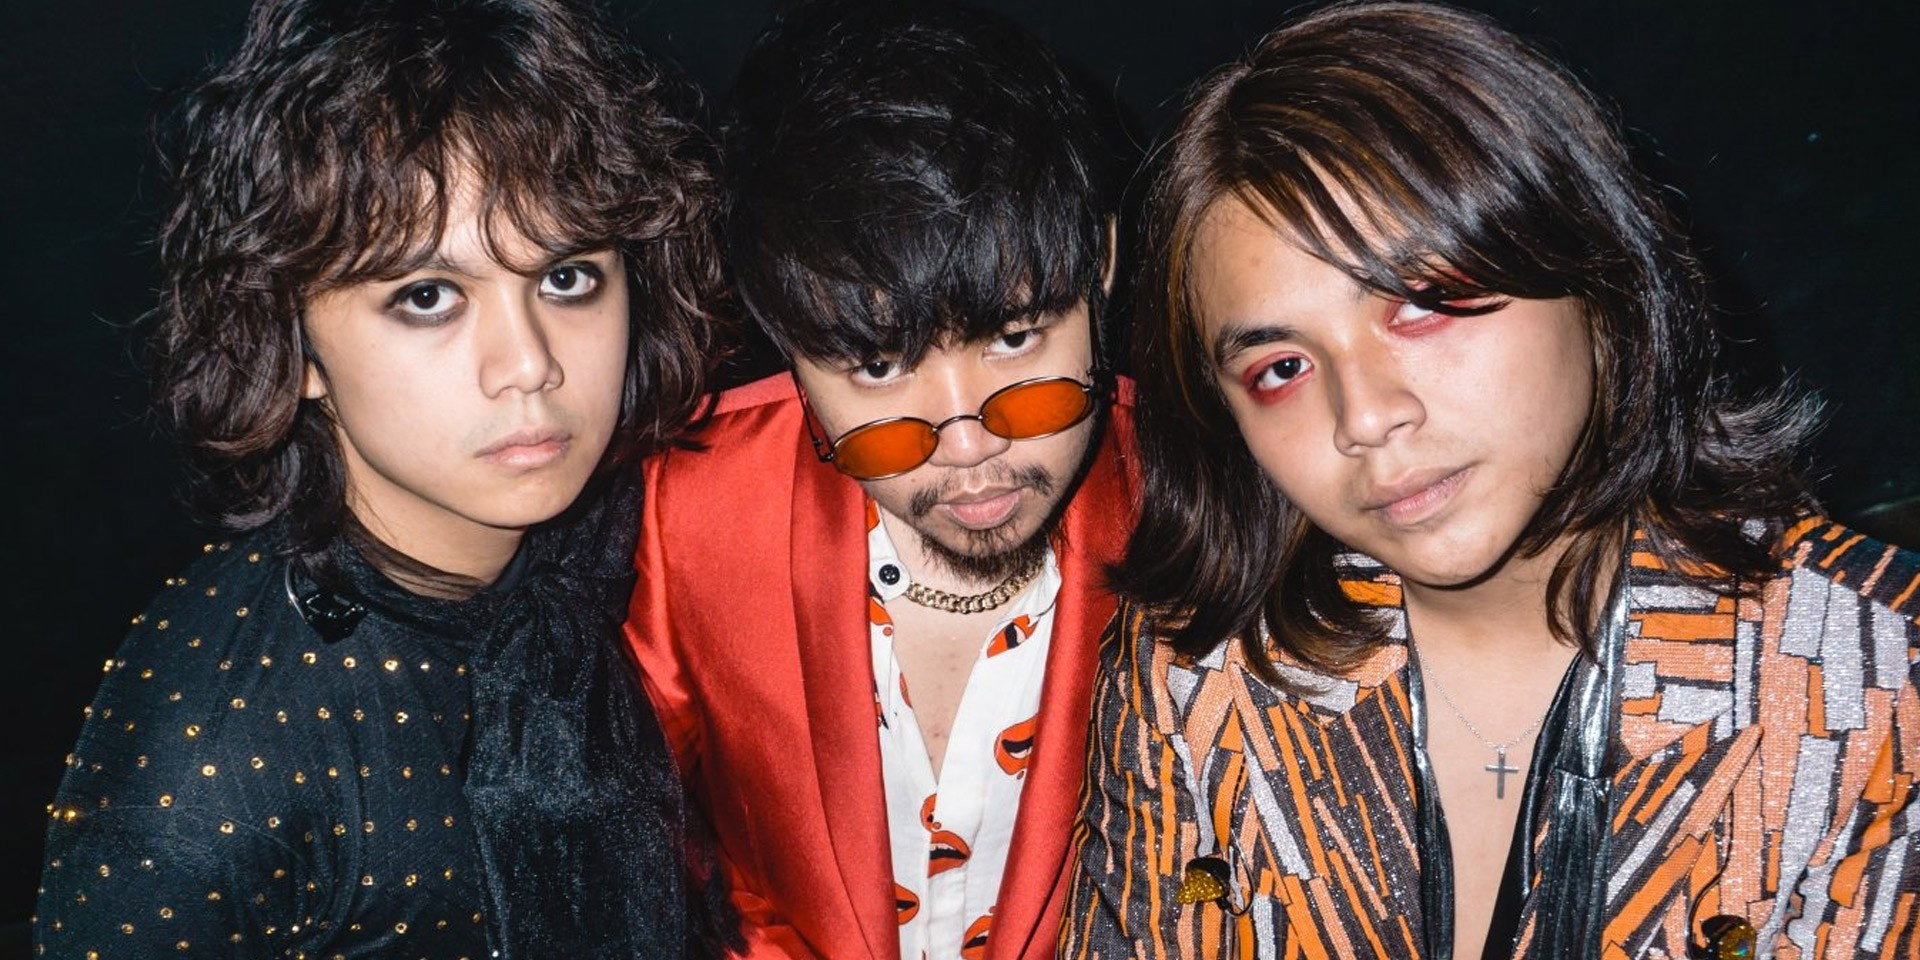 IV Of Spades to open Panic! at the Disco Manila concert